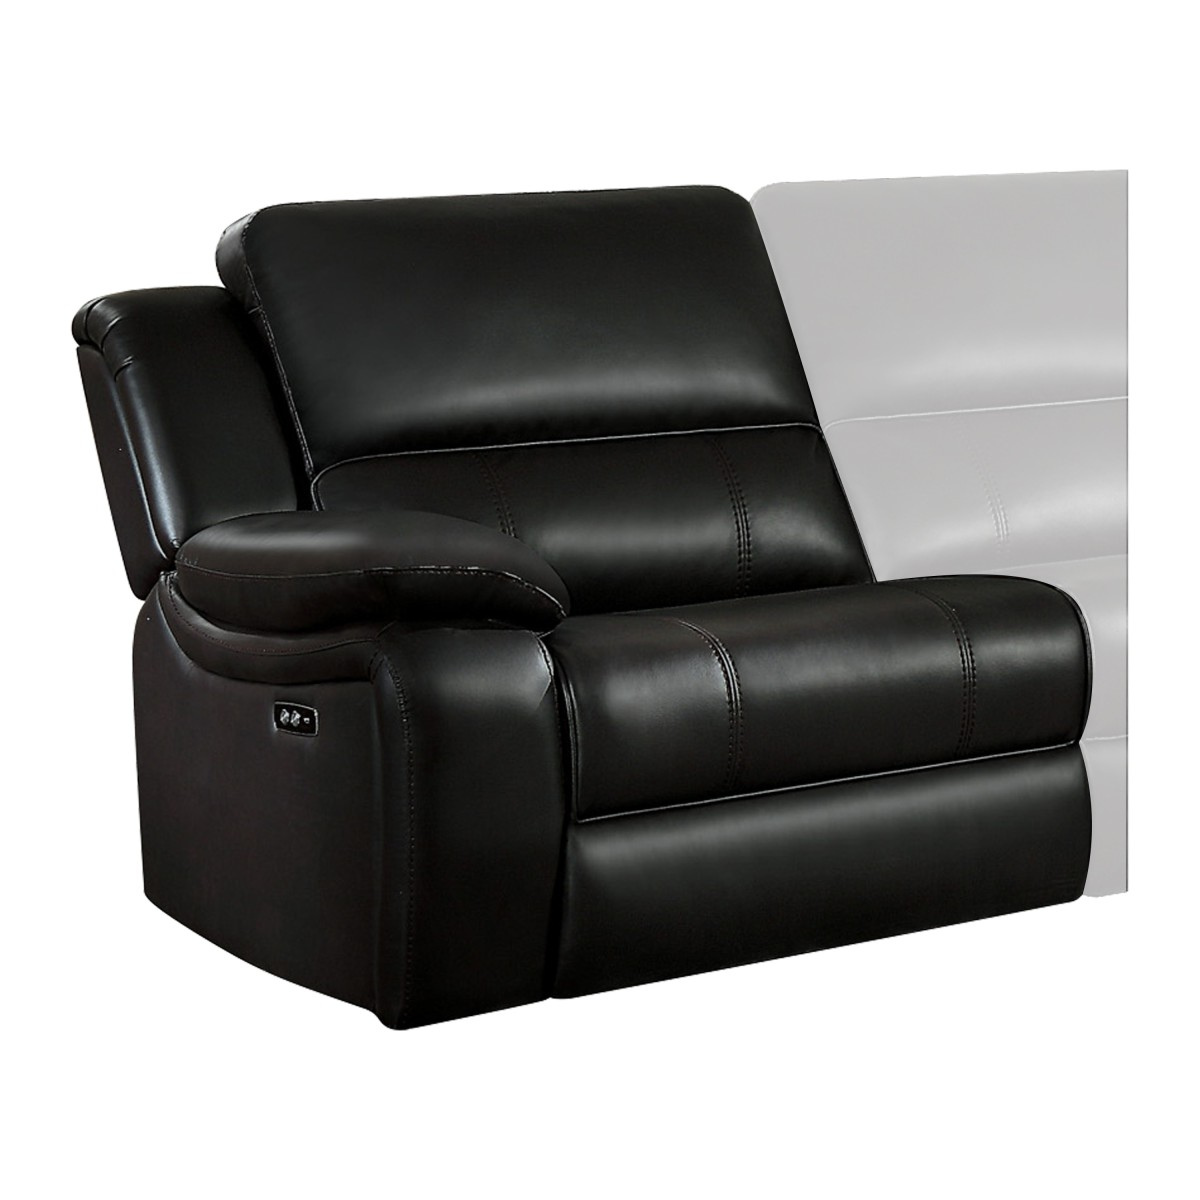 8260db Lrpw Power Left Side Reclining Chair With Usb Port